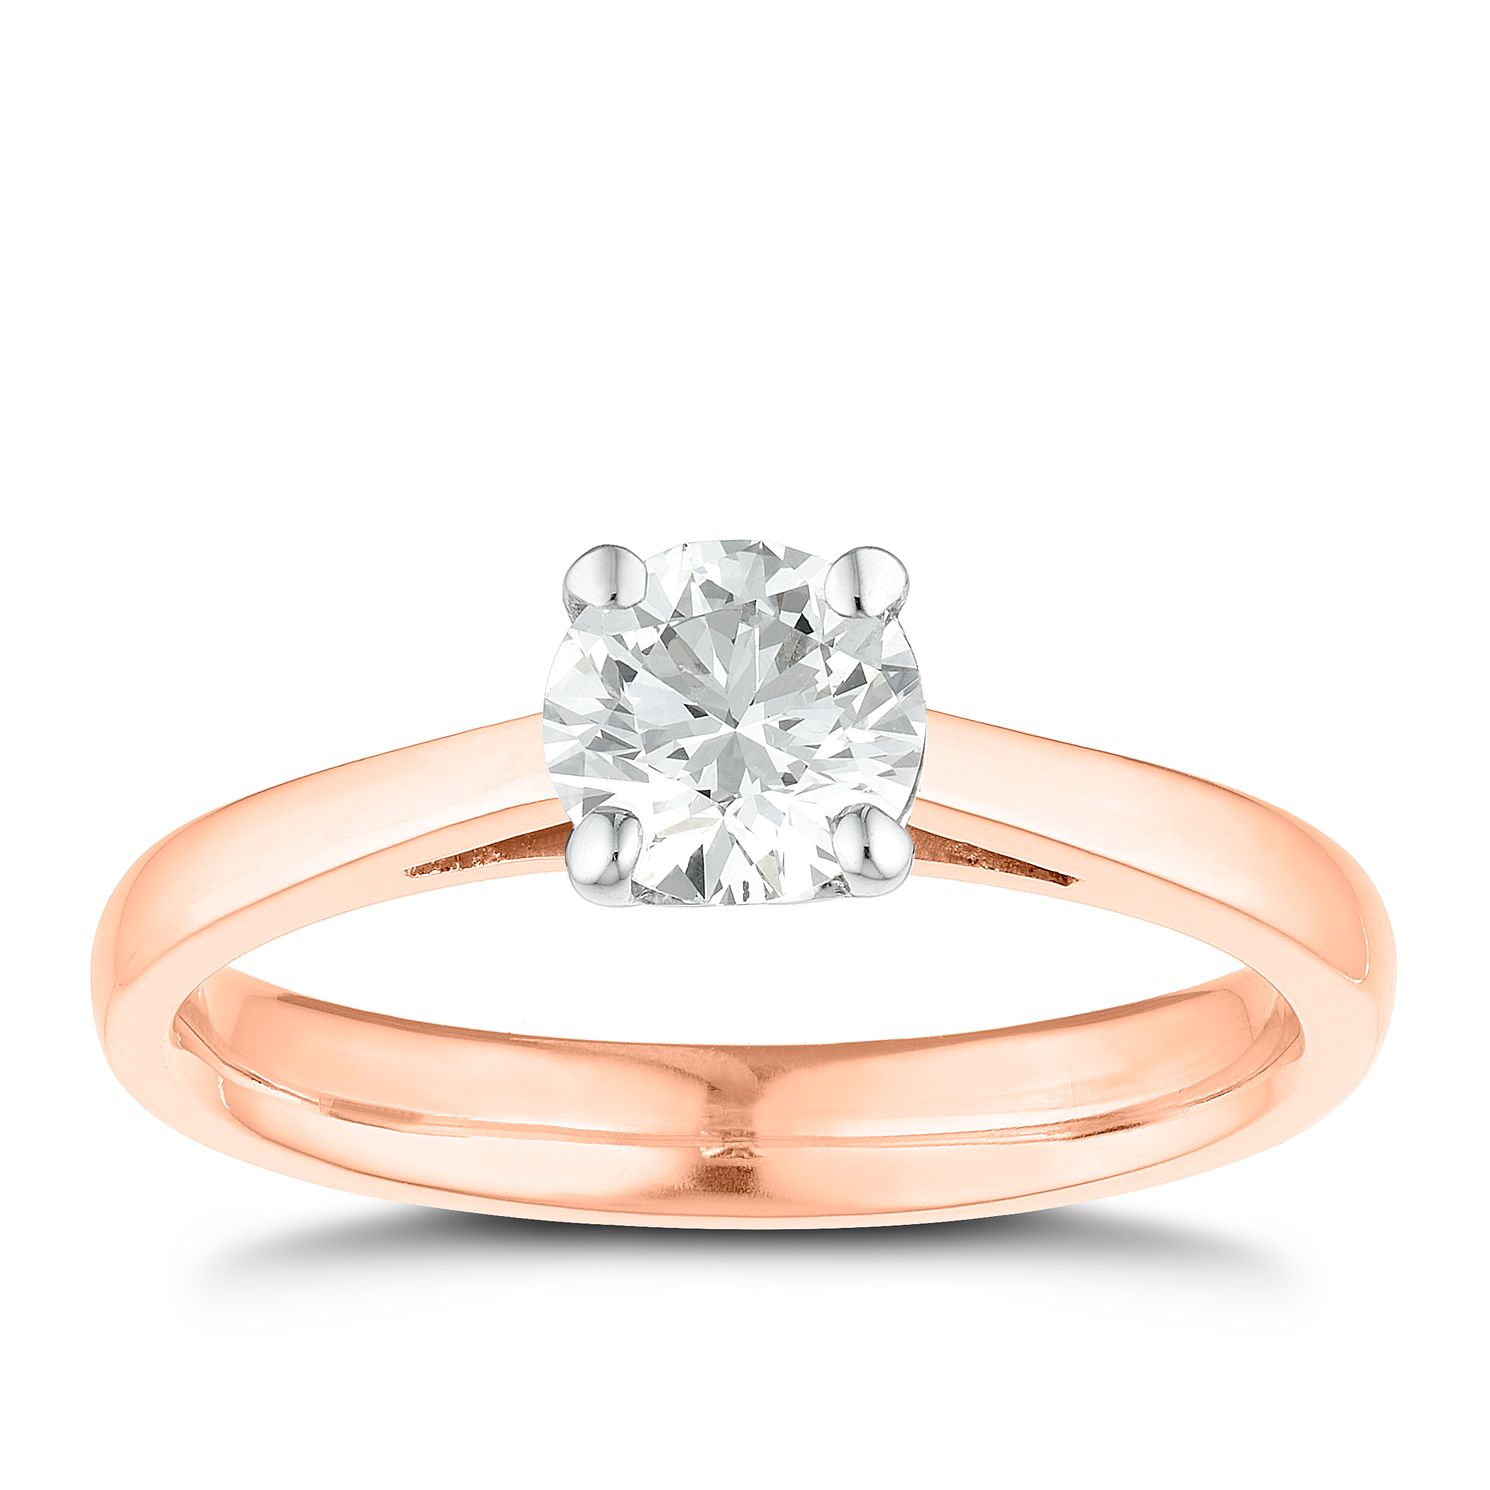 Tolkowsky 18ct Rose Gold 3/4ct I-I1 Diamond Ring - Product number 3980634